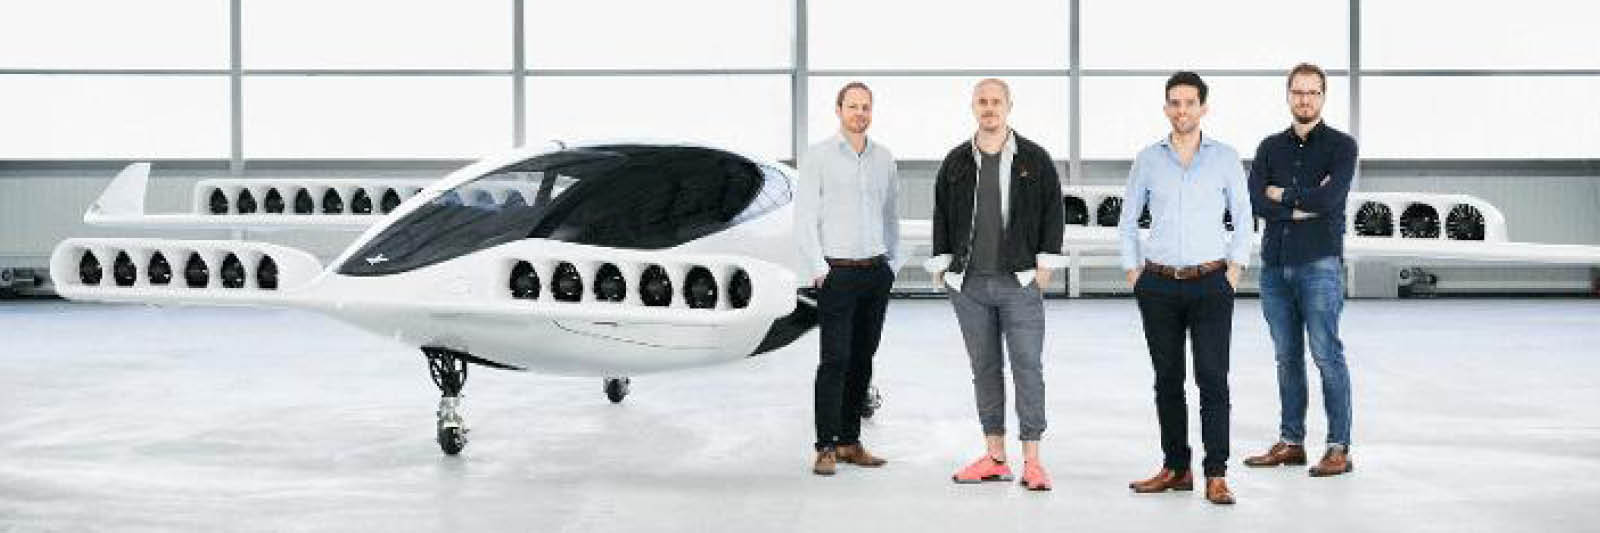 LORDS CALL FOR HS2 'PAUSE' AND LATEST FLYING TAXI TAKES OFF: 10 TOP STORIES OF THE WEEK